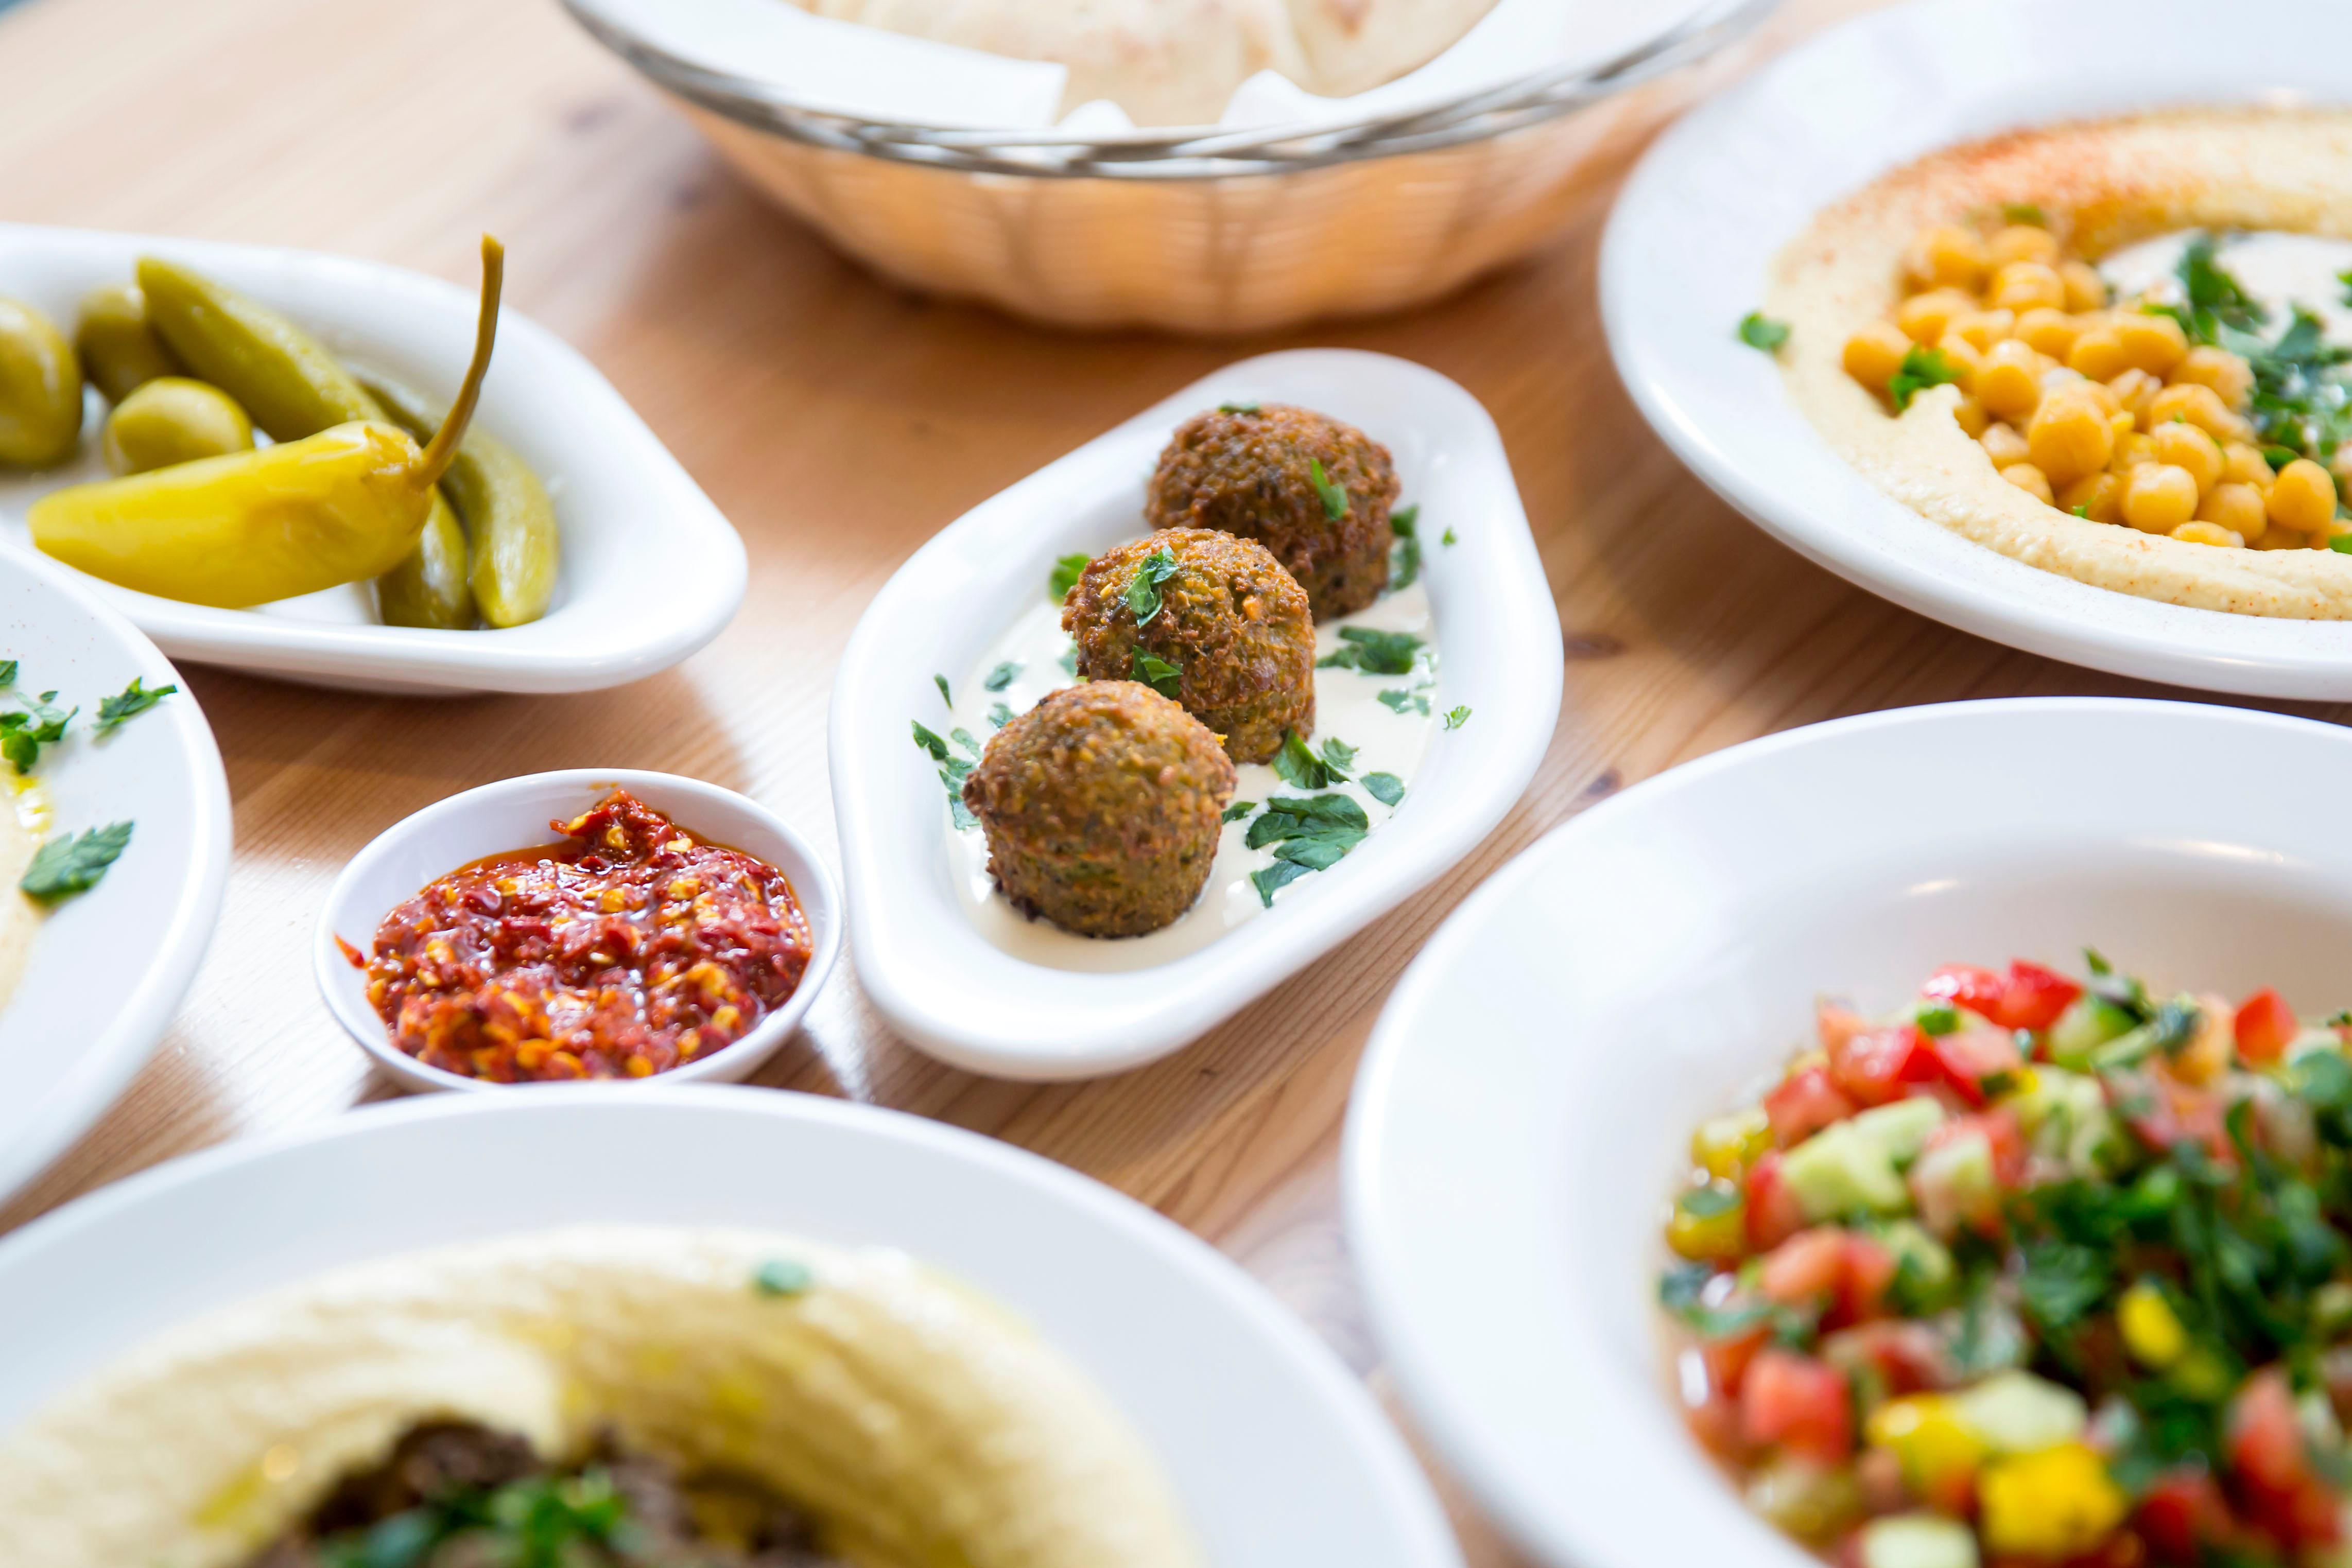 "A half order of falafel sits in the middle of a typical Israeli hummus bar meal.<p></p><p>Aviv Hummus Bar is a 100% Israeli hummus bar, straight from the streets of Tel Aviv. And now, it's on Capitol Hill! Fun fact: Hummus literally means chickpeas. And while the west has kind of appropriated hummus and made it its own thing, traditional hummus isn't a sauce, or a dip, it's supposed to be a eaten as a meal consisting of smashed chickpeas, ""tahina"" and lemon. Enter Aviv Hummus Bar - trying to educate through this food. The Hummus Bar is located on 107 15th Ave E, Seattle. (Image: Sy Bean / Seattle Refined){&nbsp;}<br></p>"